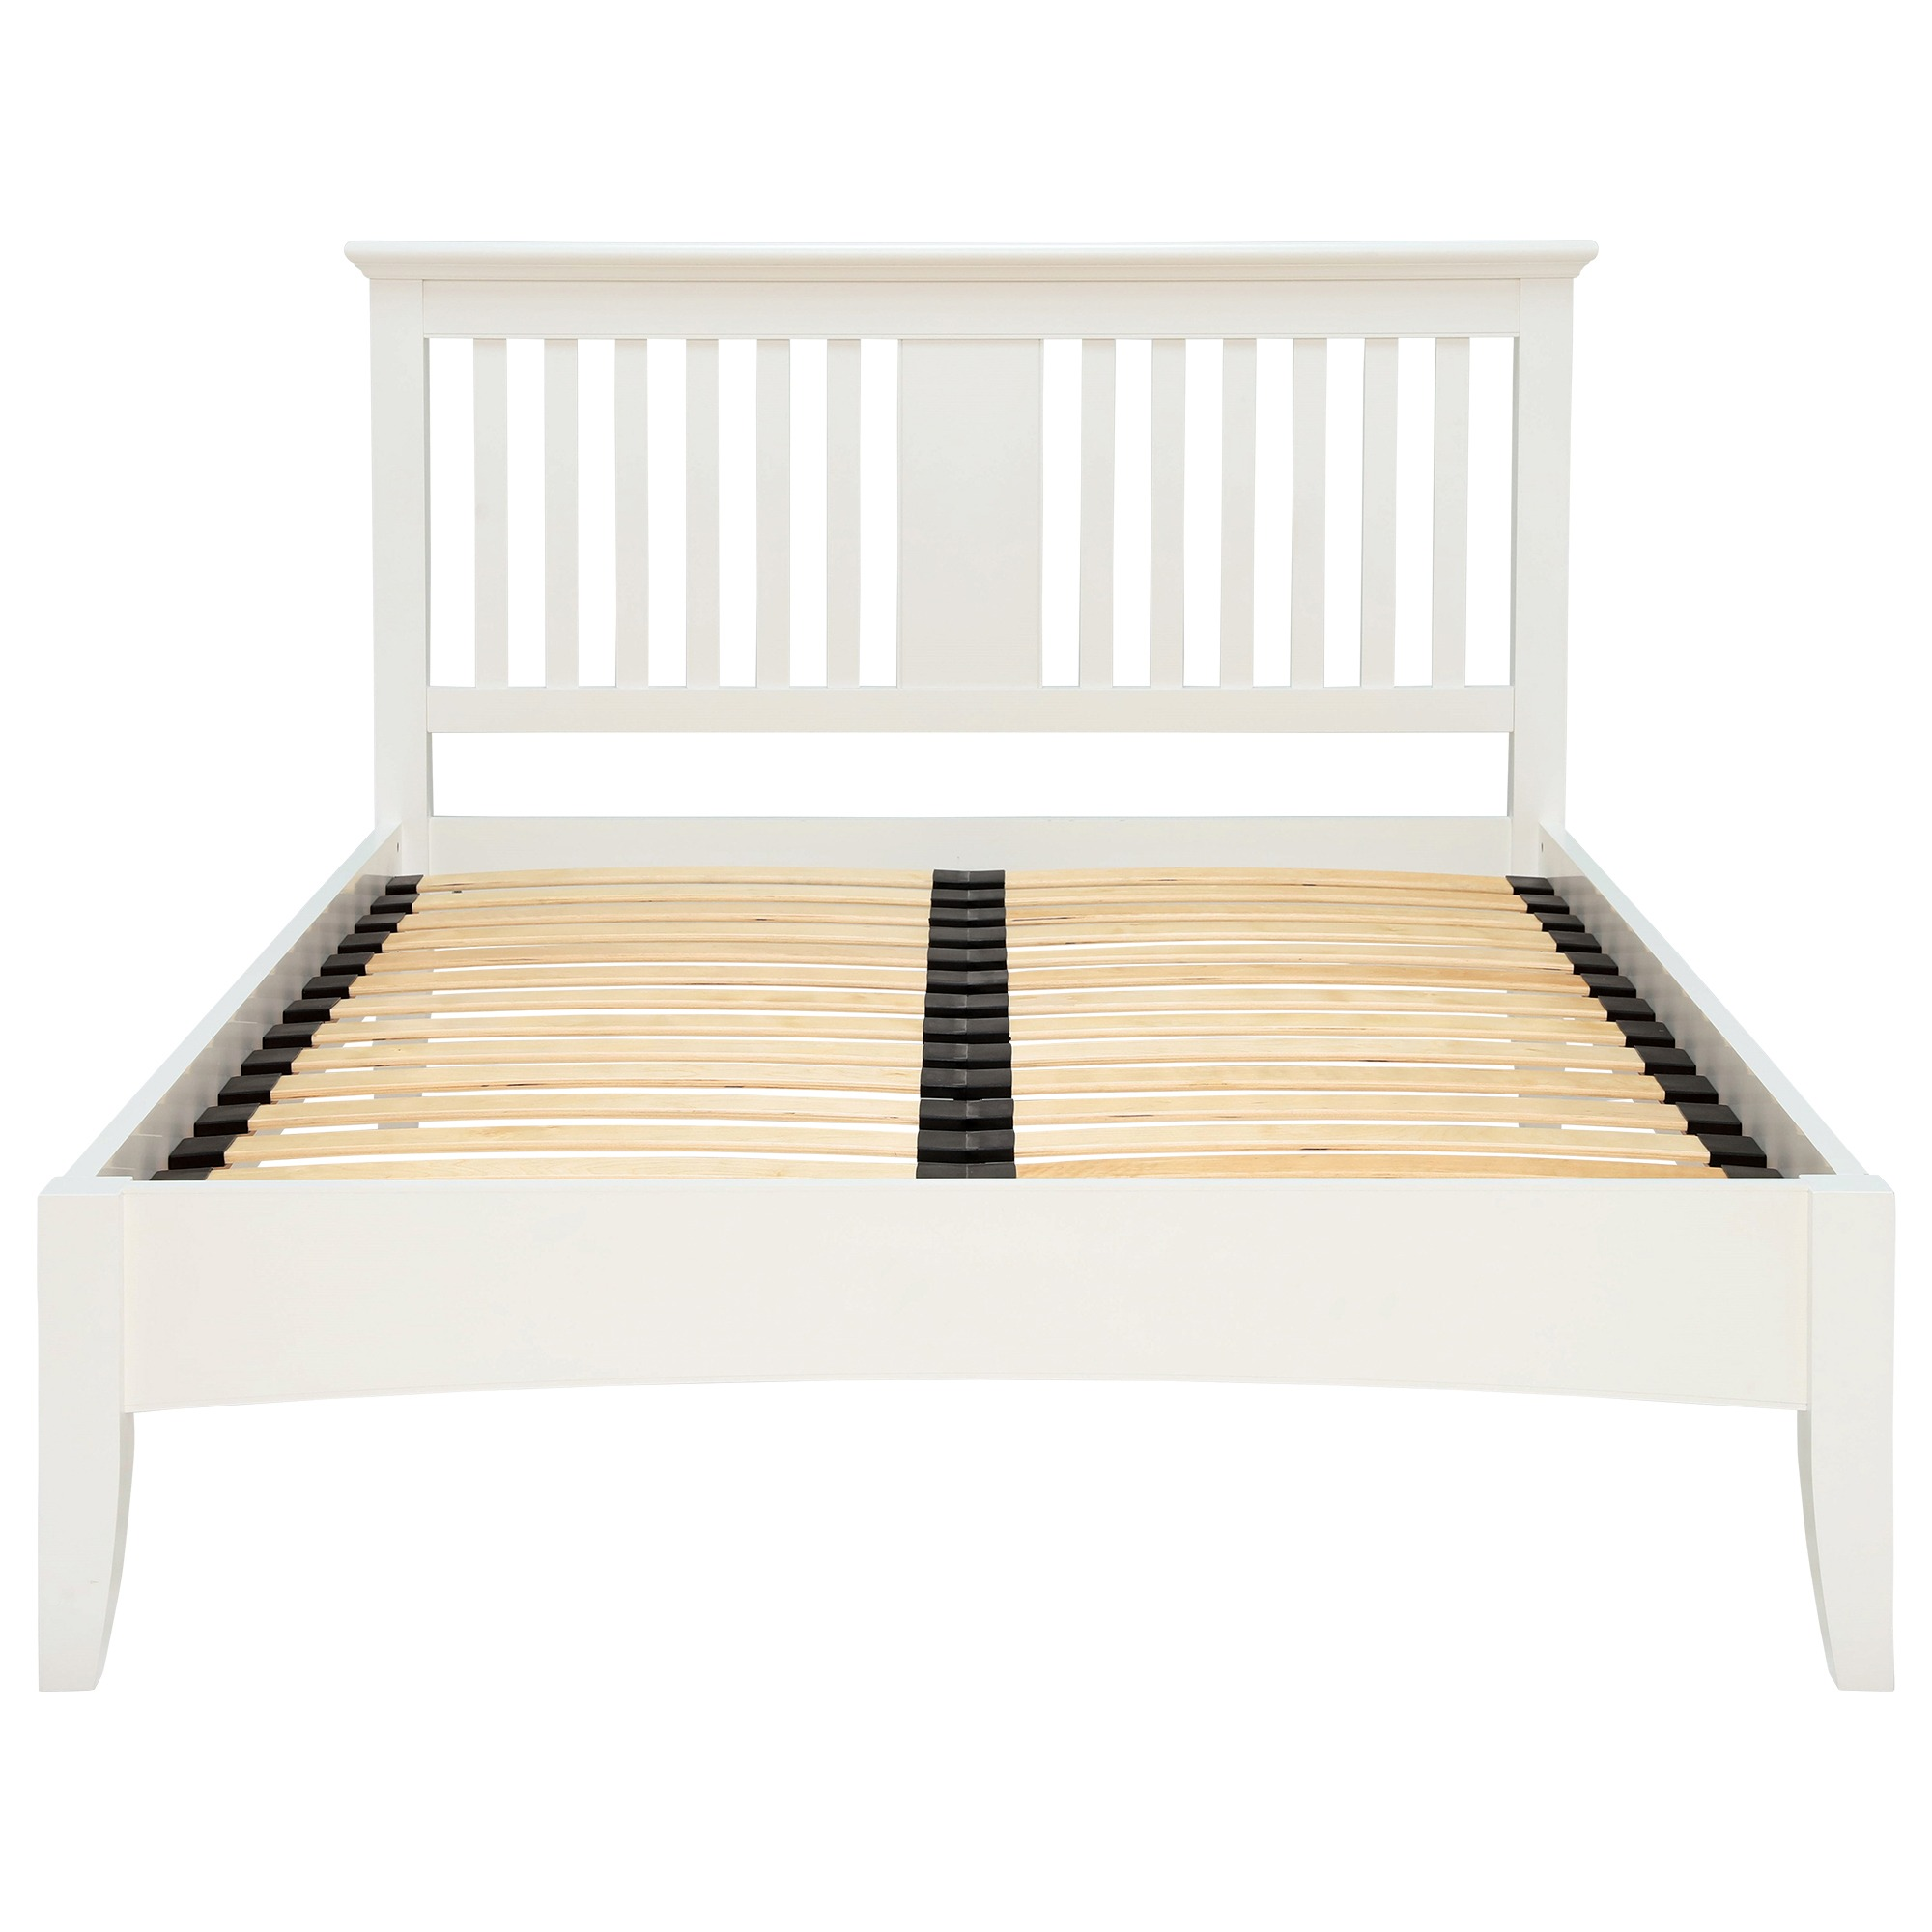 KYRA WHITE BEDFRAME - END DETAIL